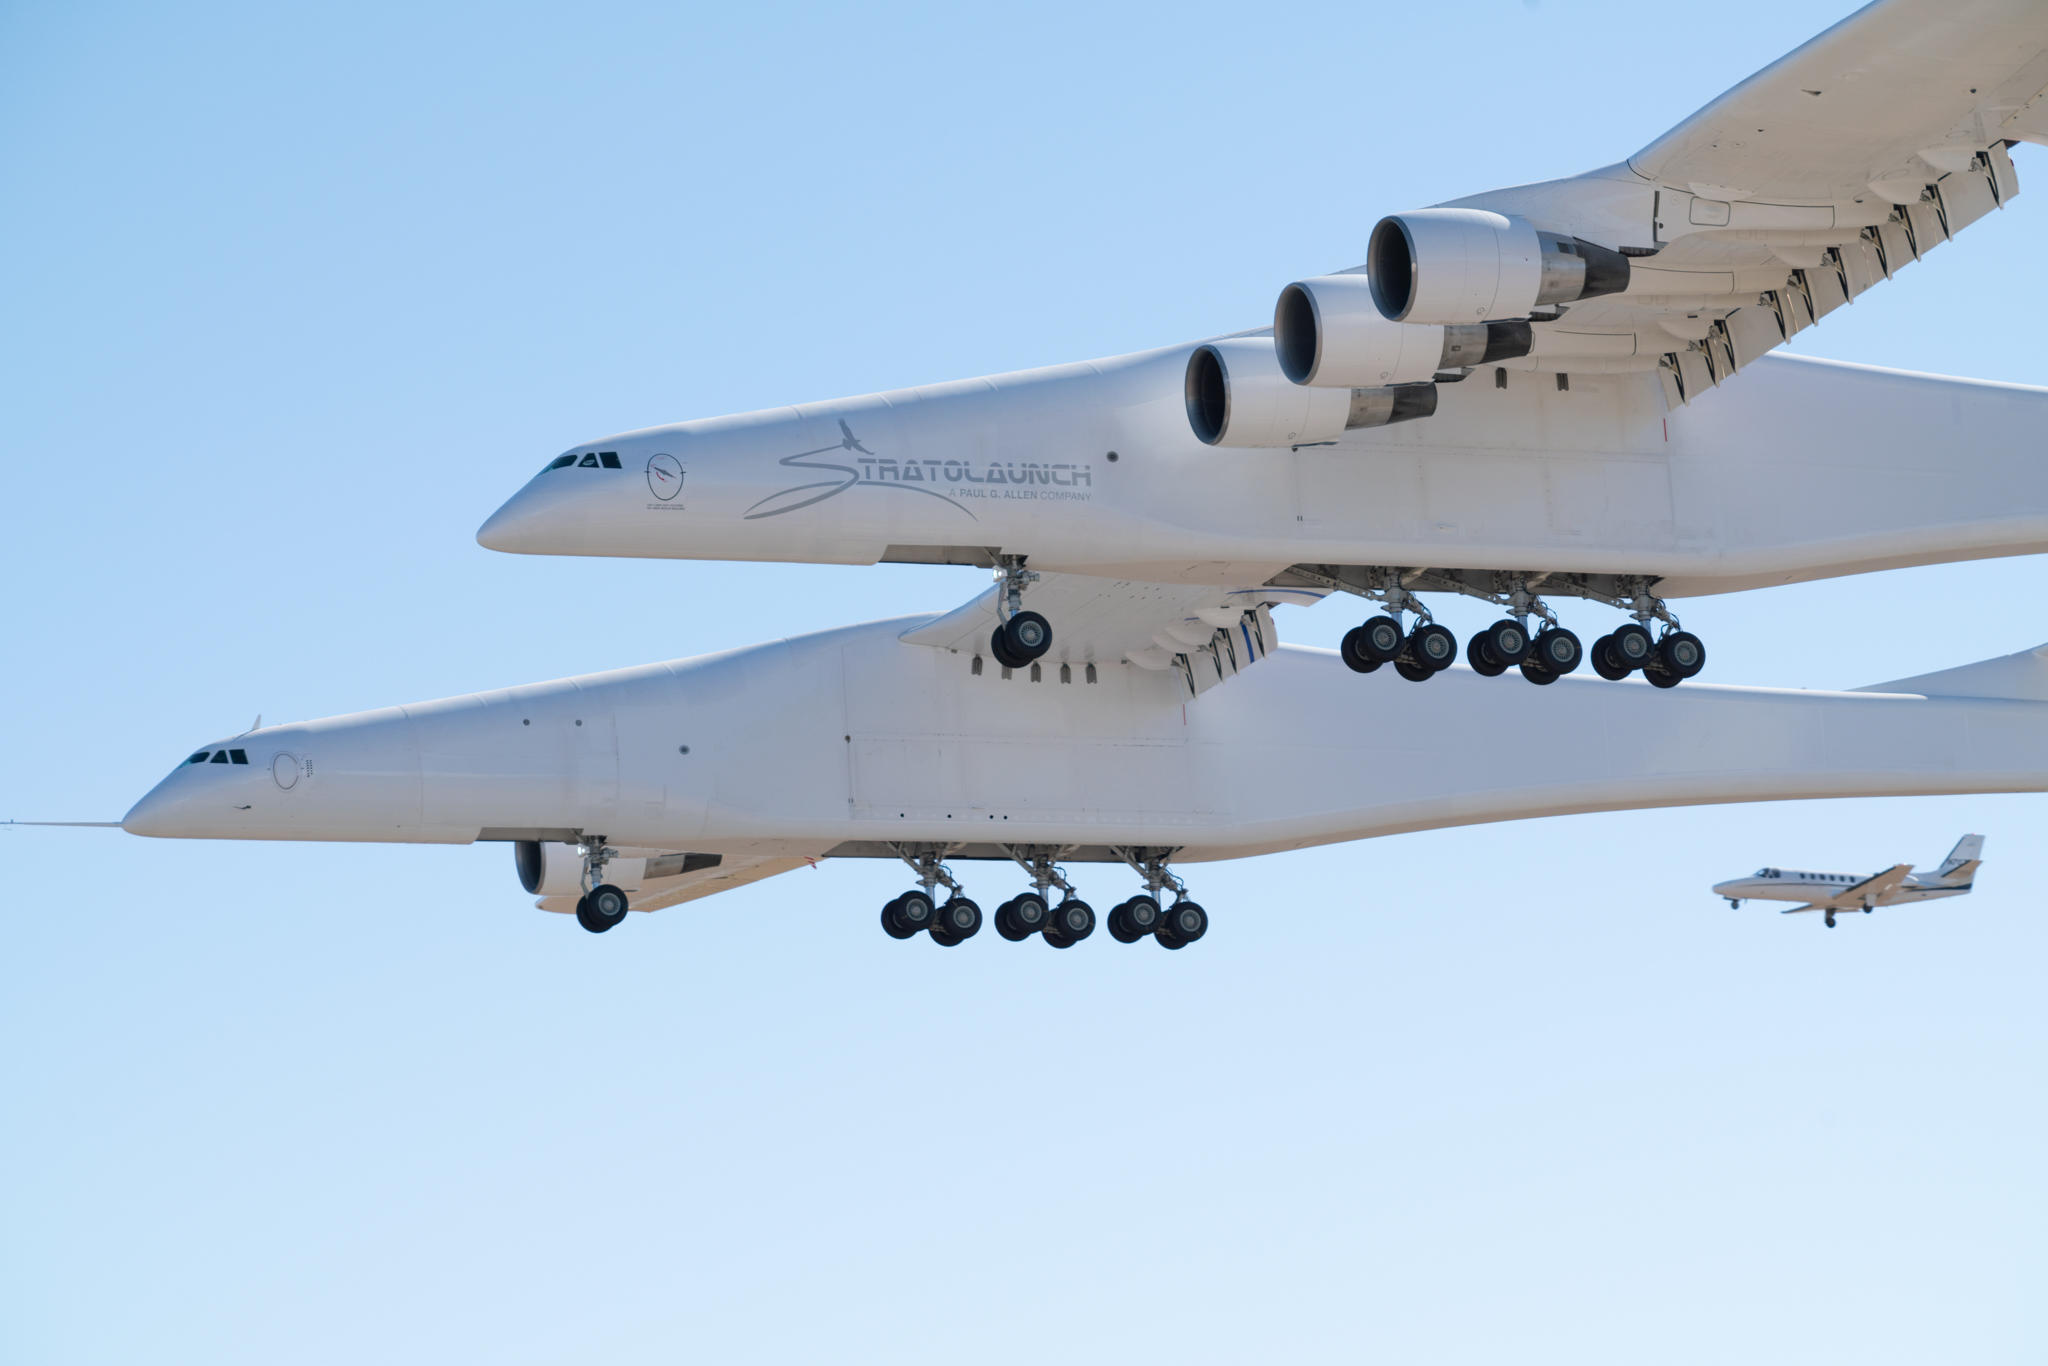 stratolaunch-ff-2238